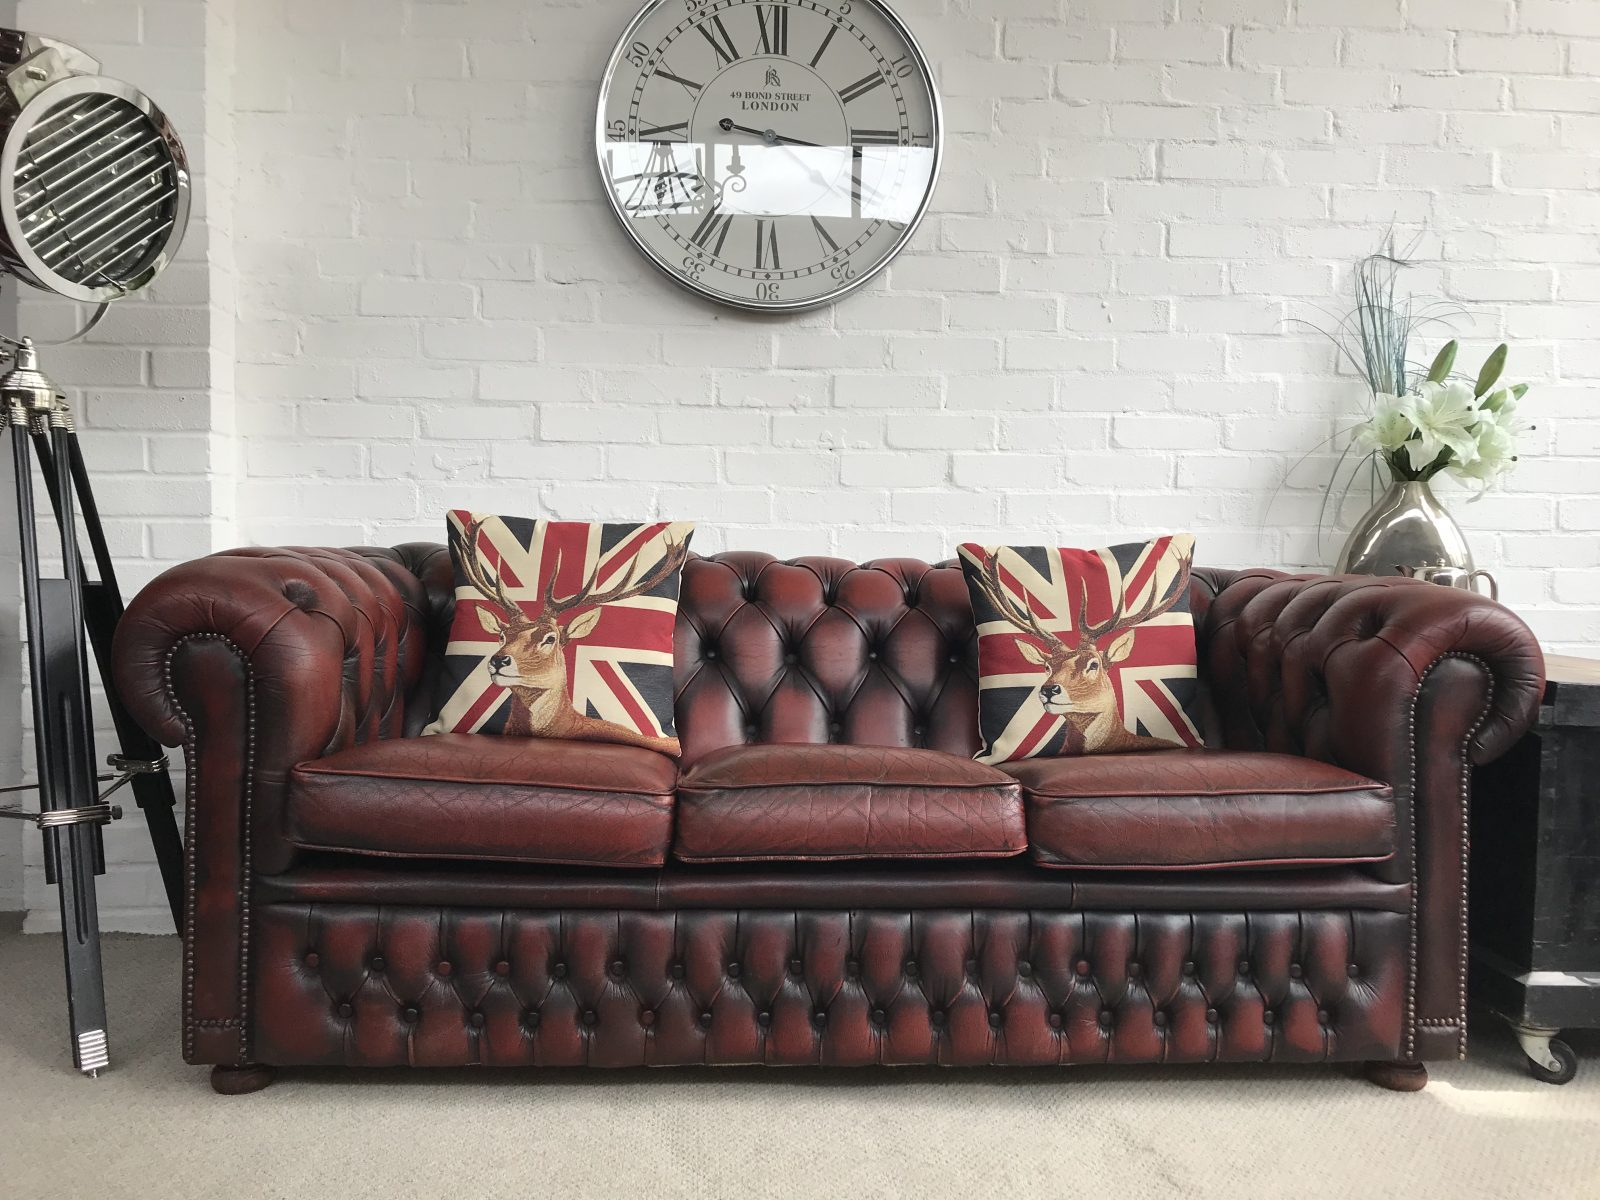 Vintage Oxblood Chesterfield Sofa.(One Of A Matching Pair)